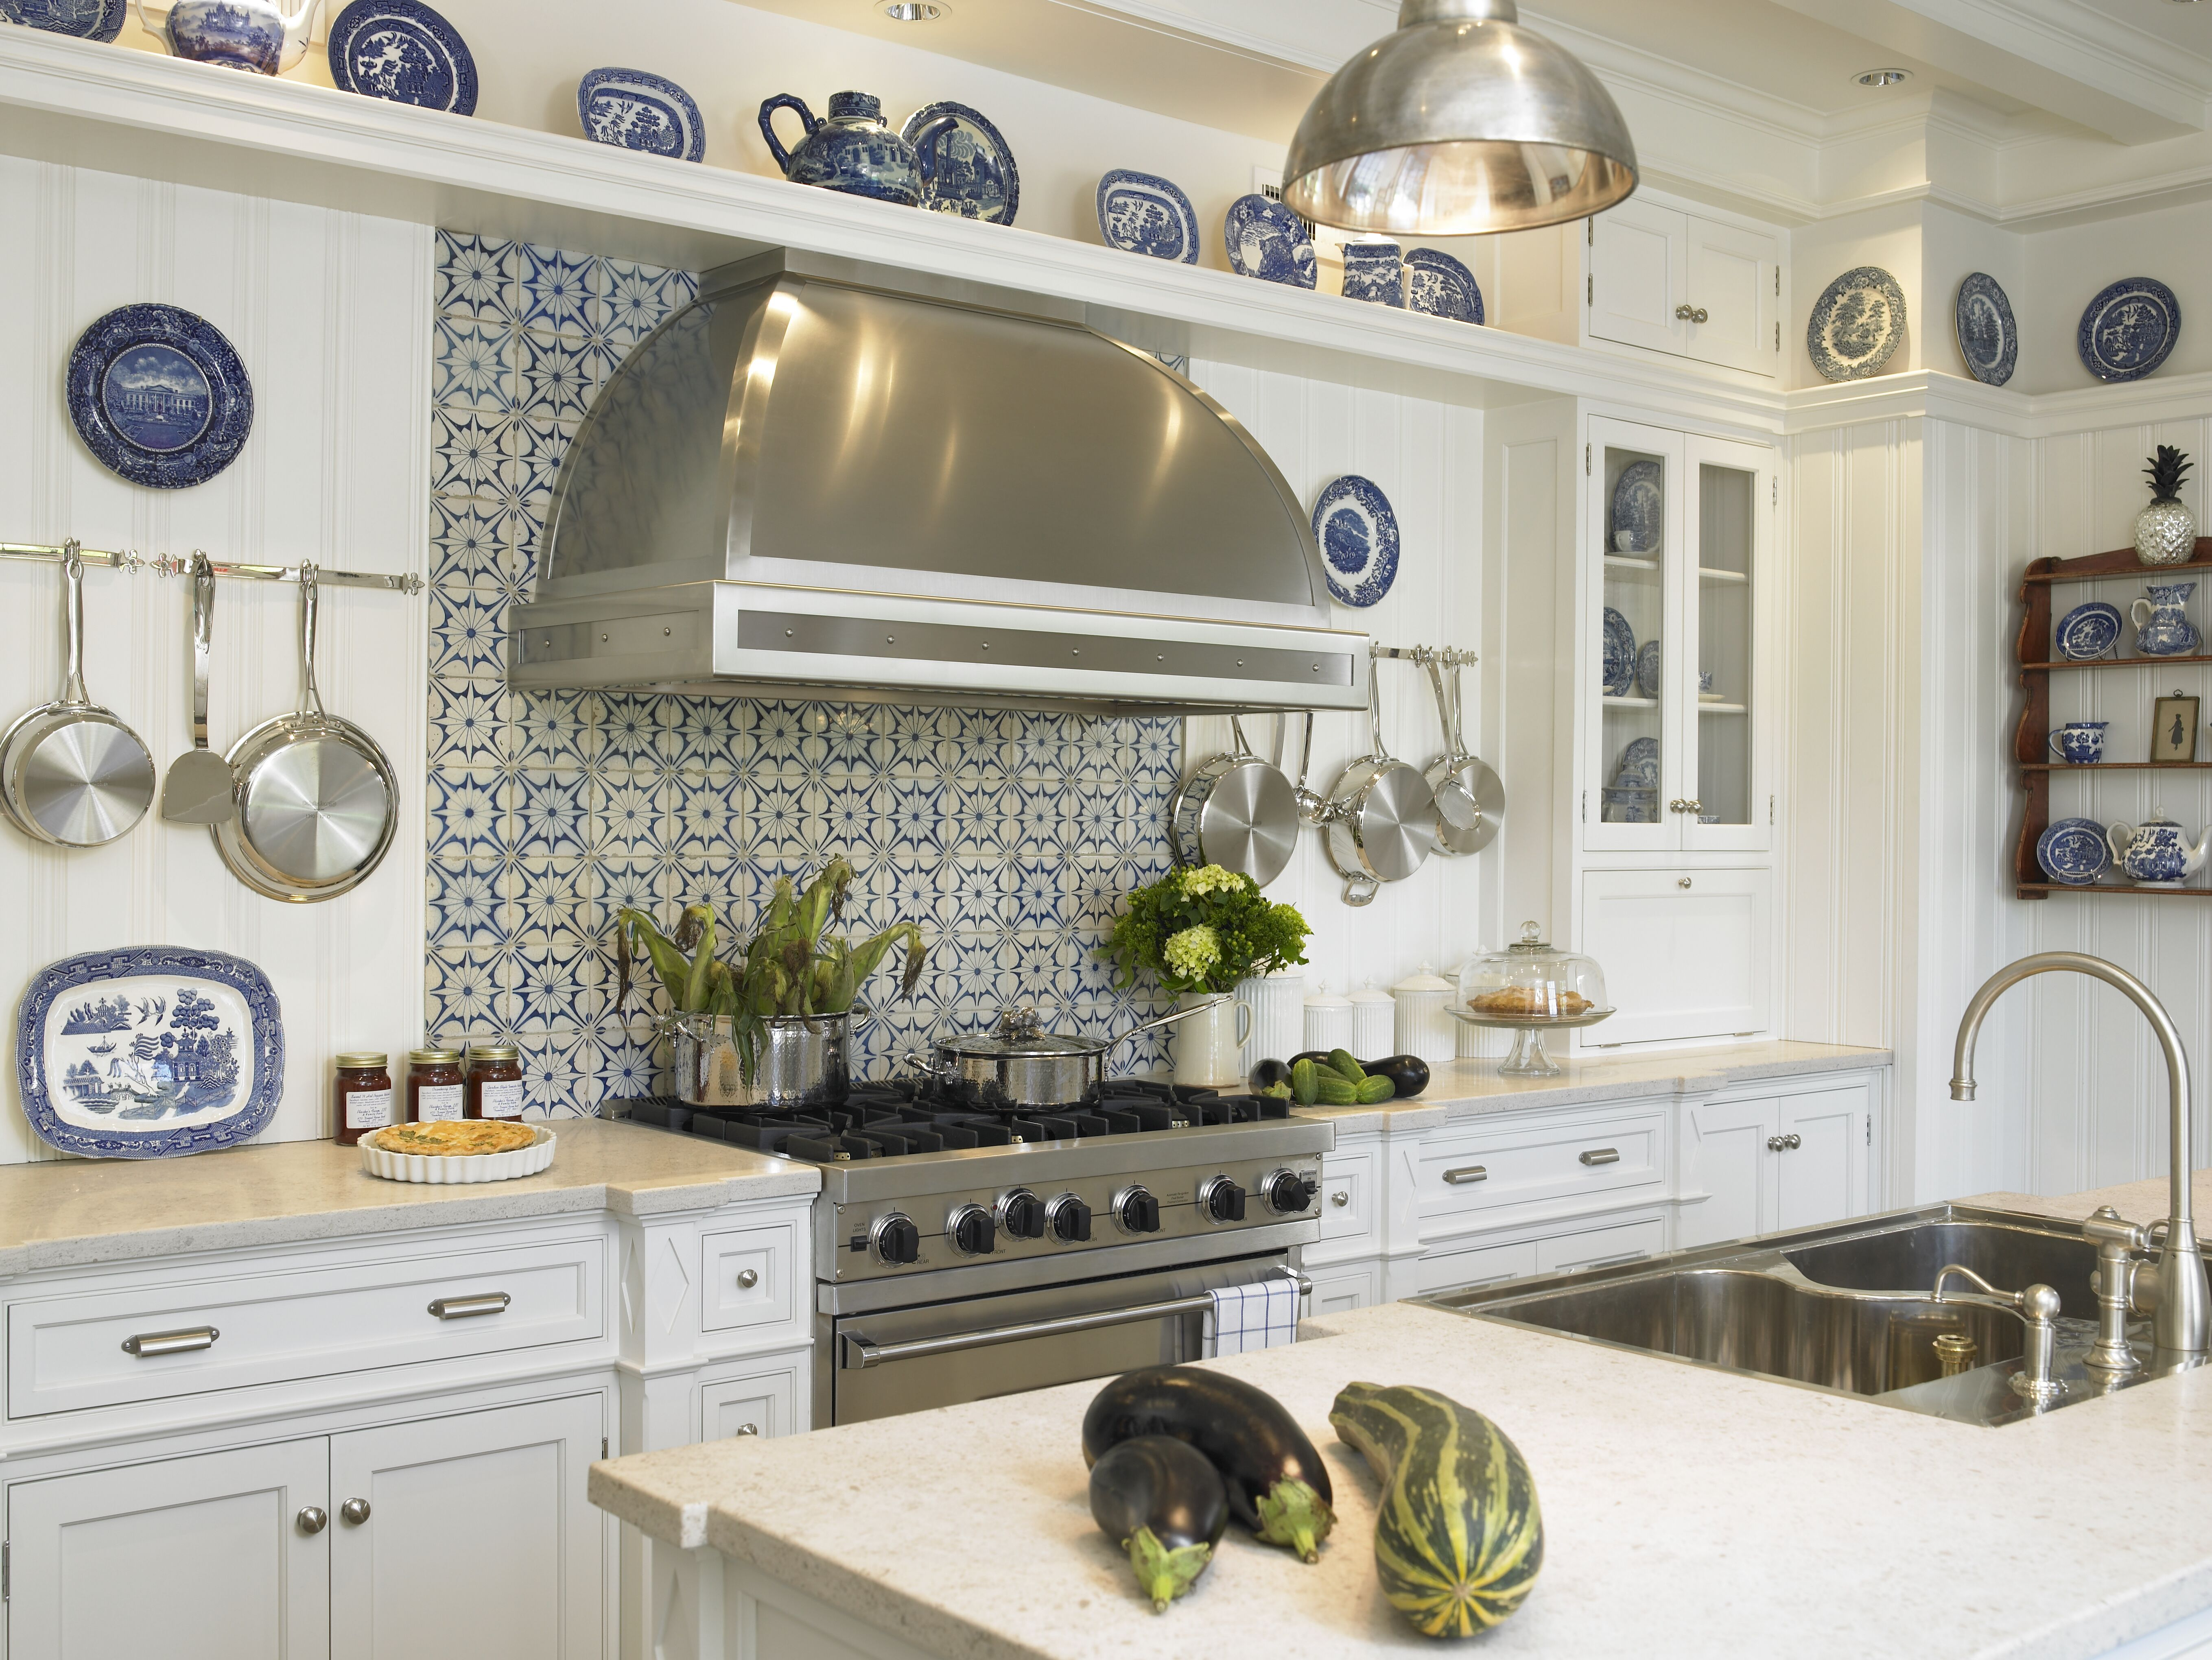 beach kitchen kitchmaple amp granite cabinetry cabinets